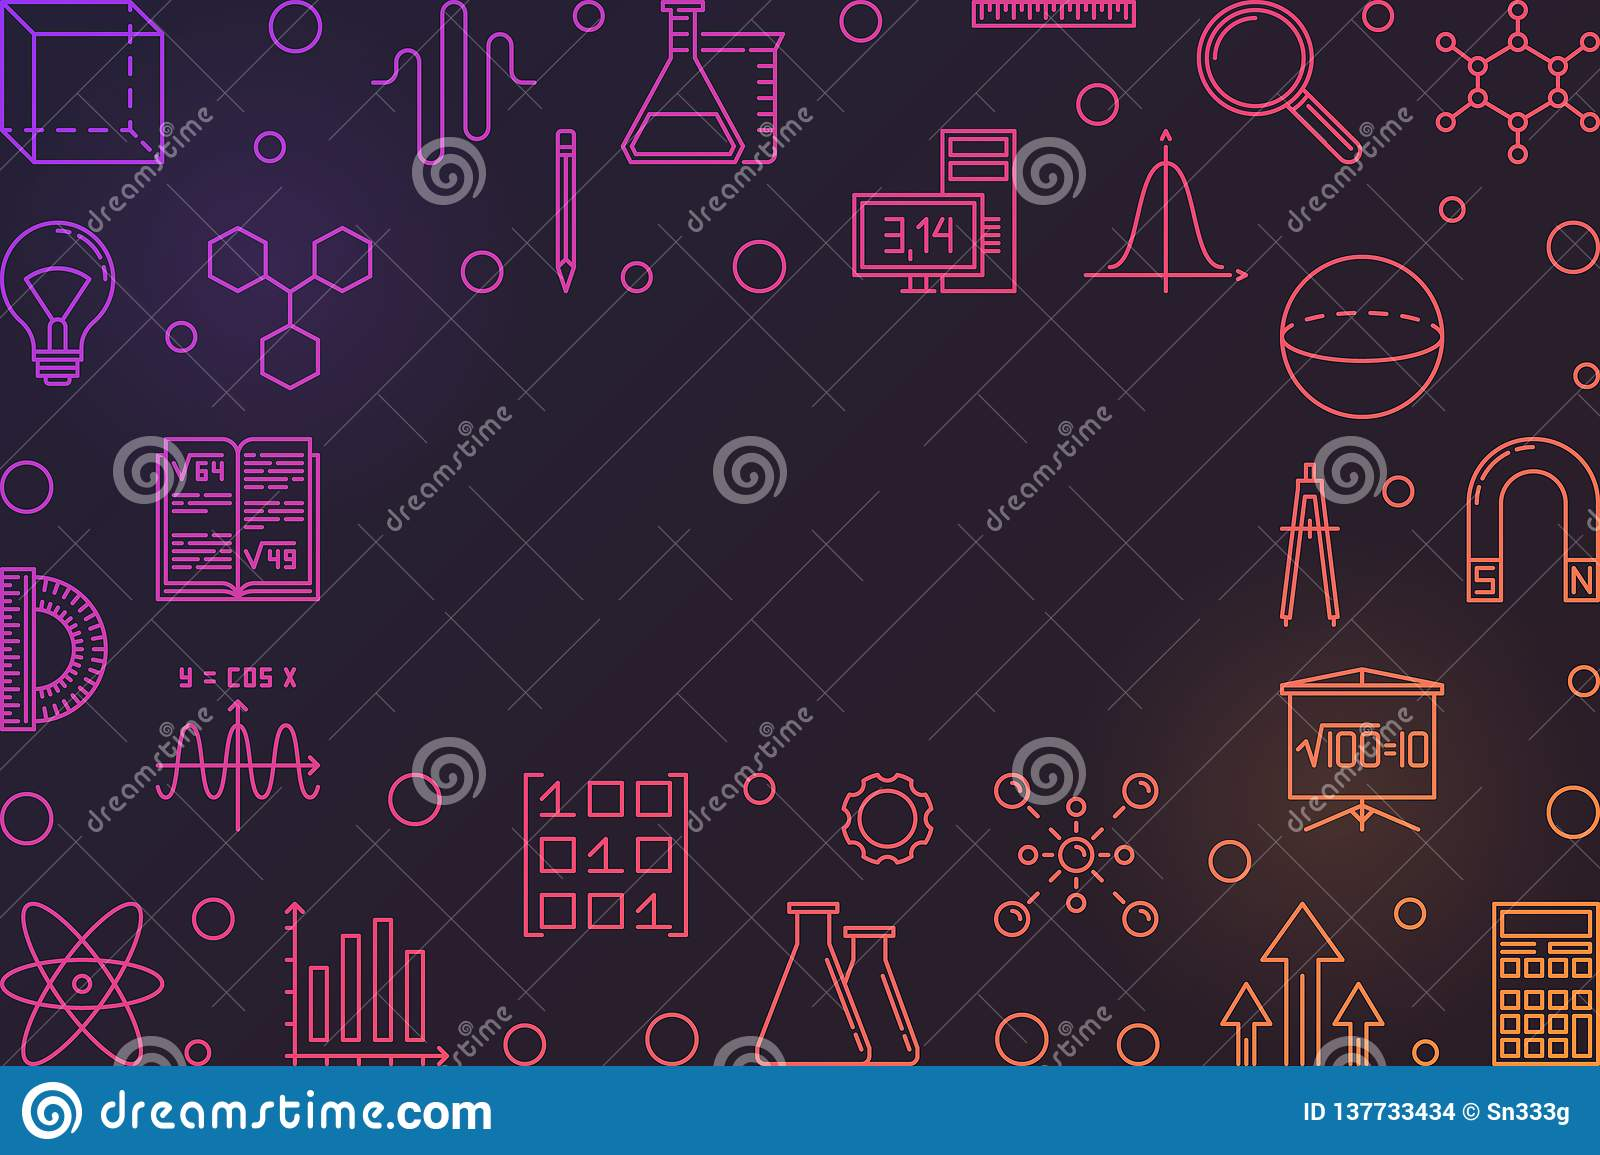 Stem Education Vector Colorful Frame With Dark Background Stock Vector Illustration Of Innovation Element 137733434